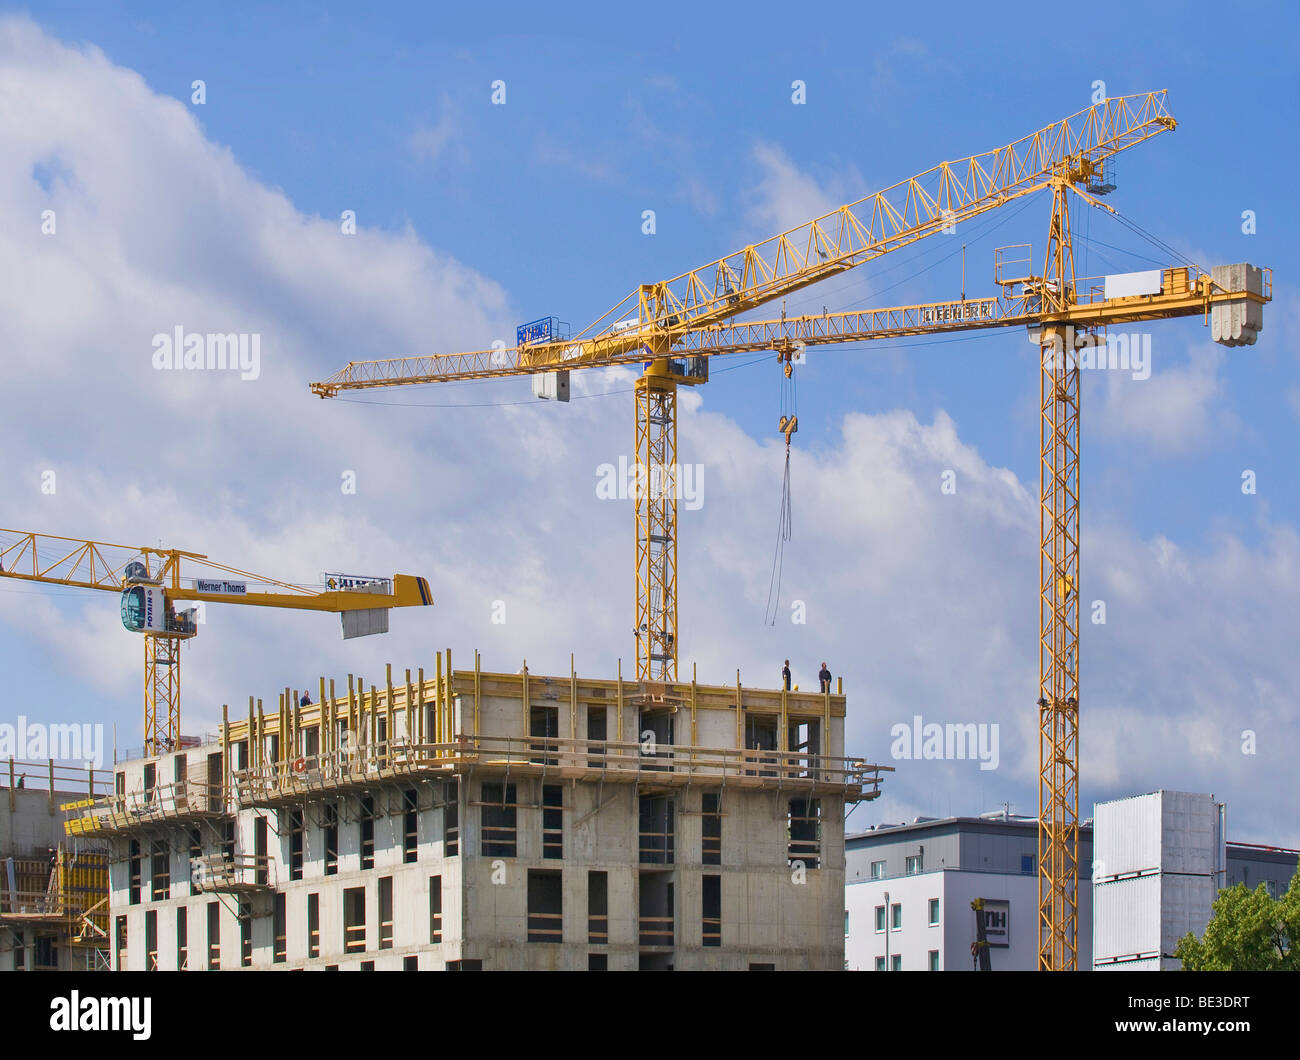 Framing with cranes, North Rhine-Westphalia, Germany, Europe - Stock Image